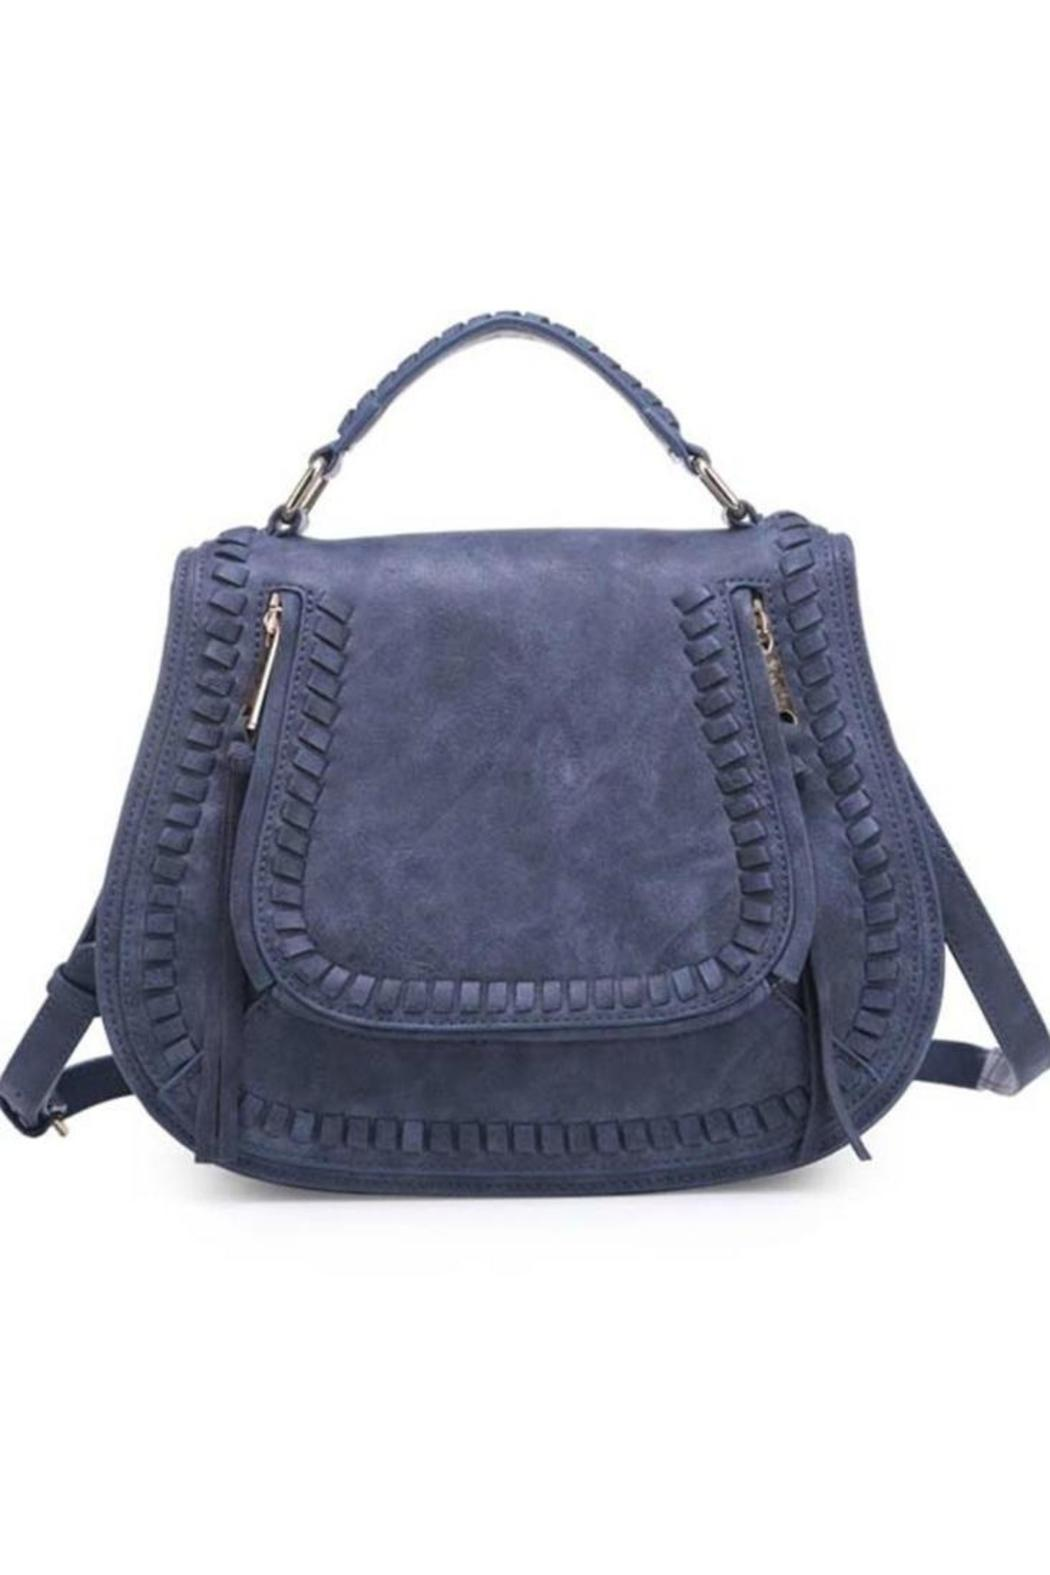 Urban expressions navy crossbody bag from miami allie chica jpg 1050x1575  Navy cross bags c461e98f39